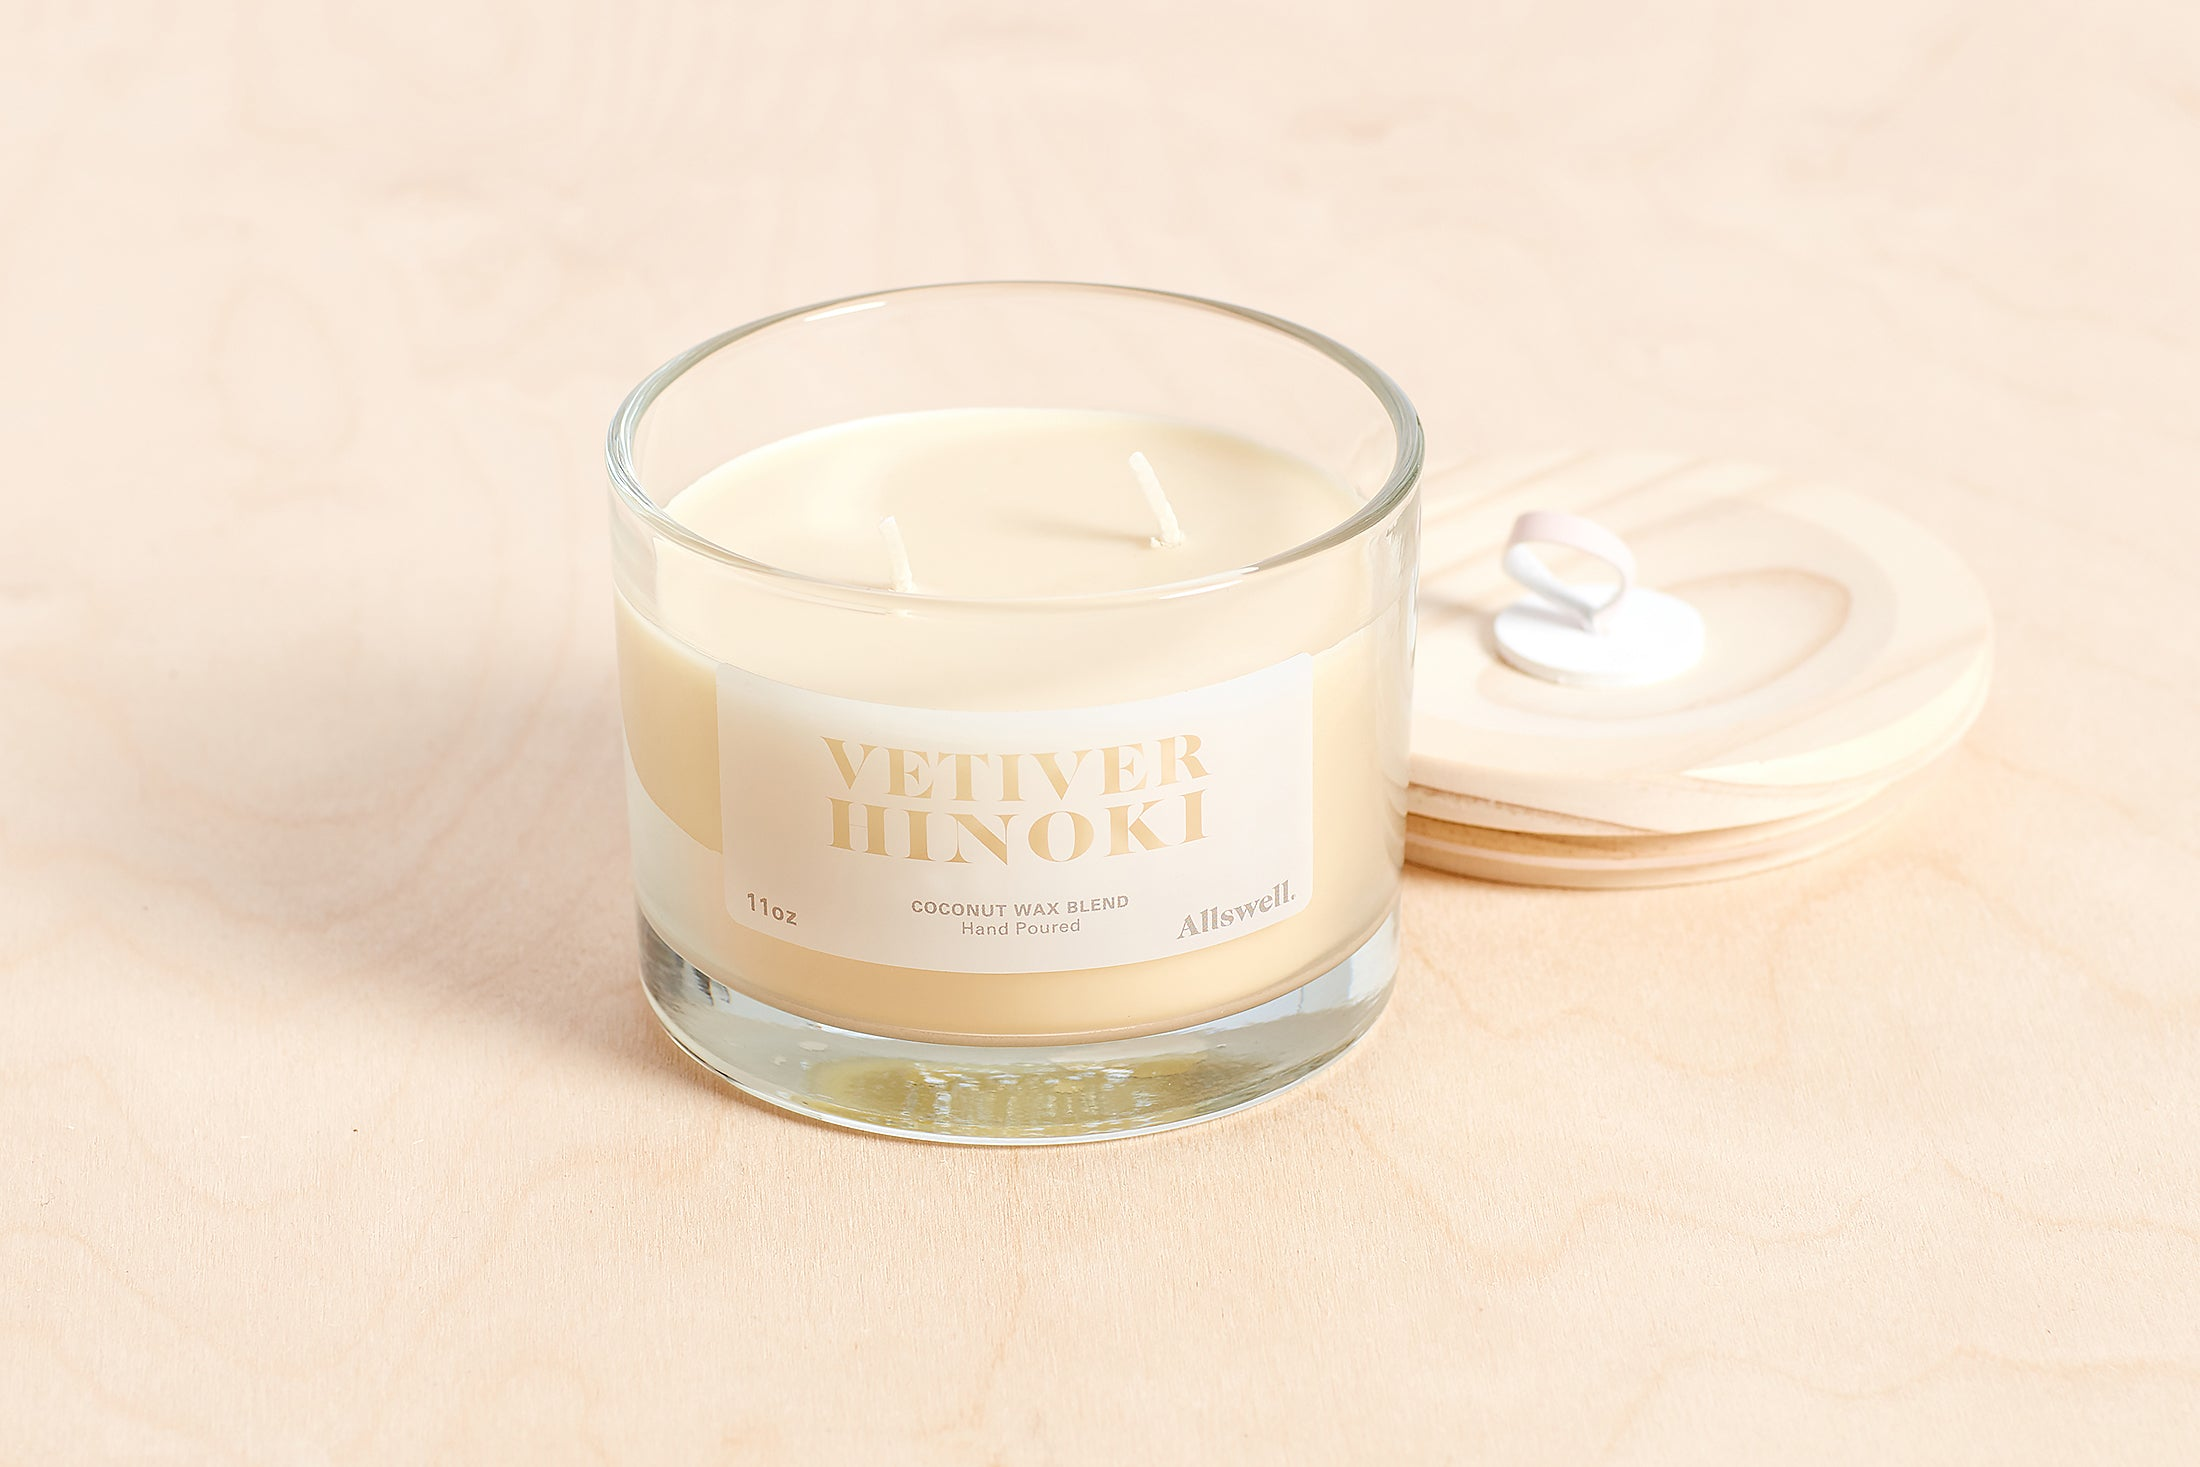 Vetiver Hinoki Coconut Wax Blend Candle